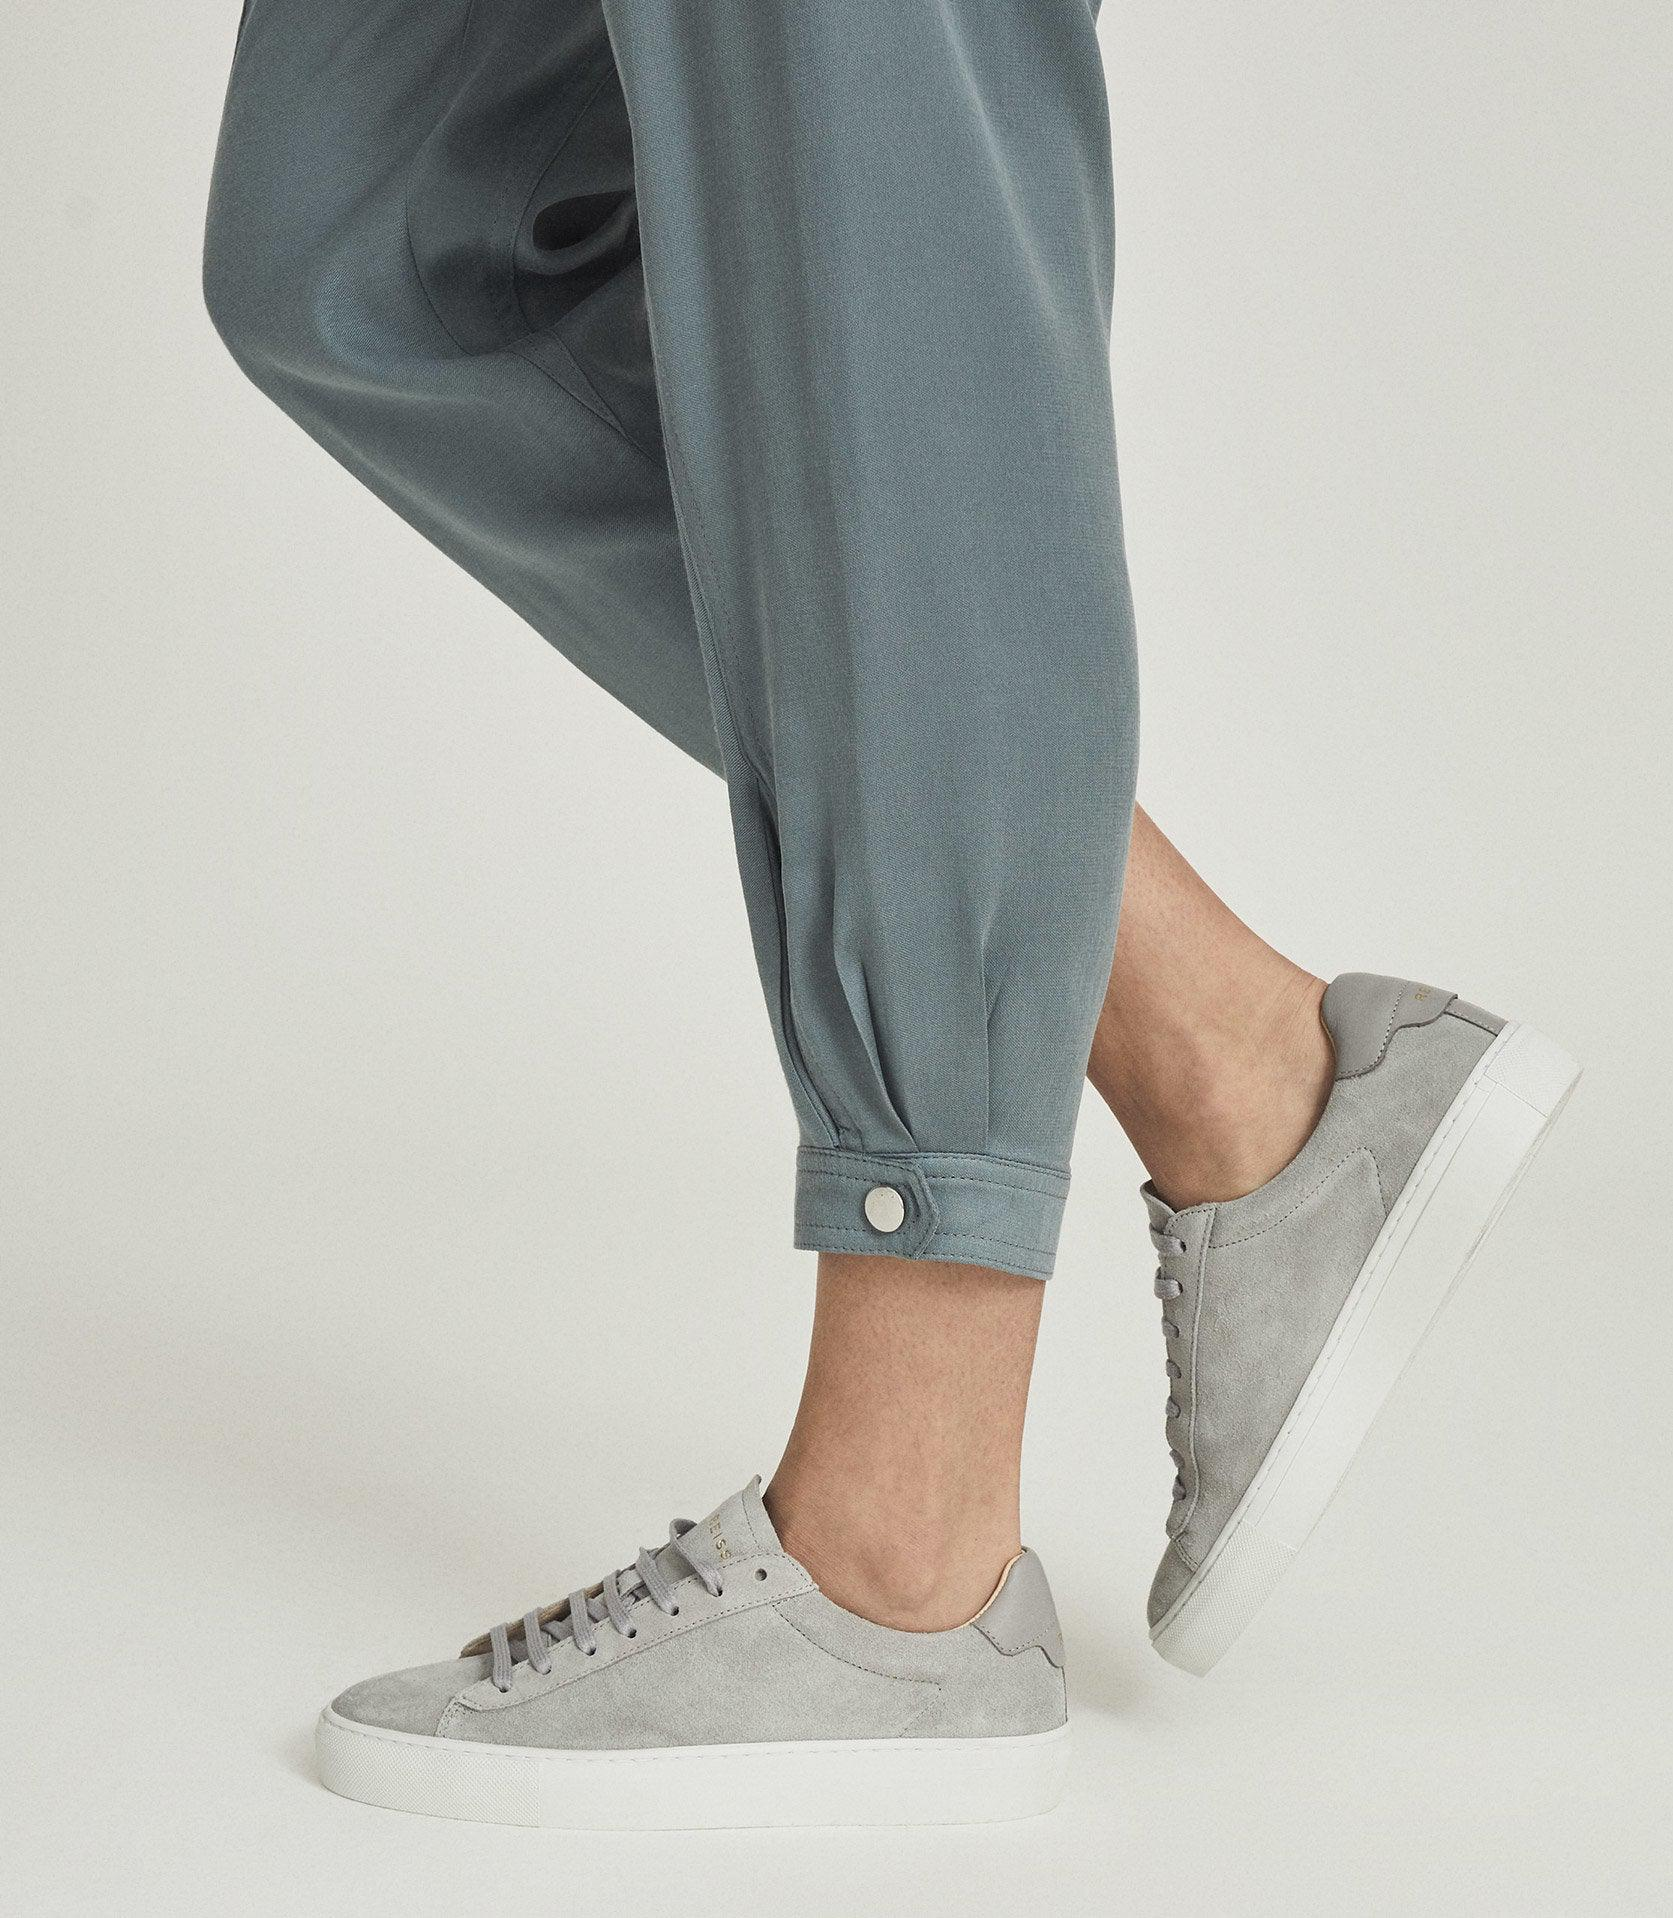 MARLOW - PLEAT FRONT TAPERED PANTS 2